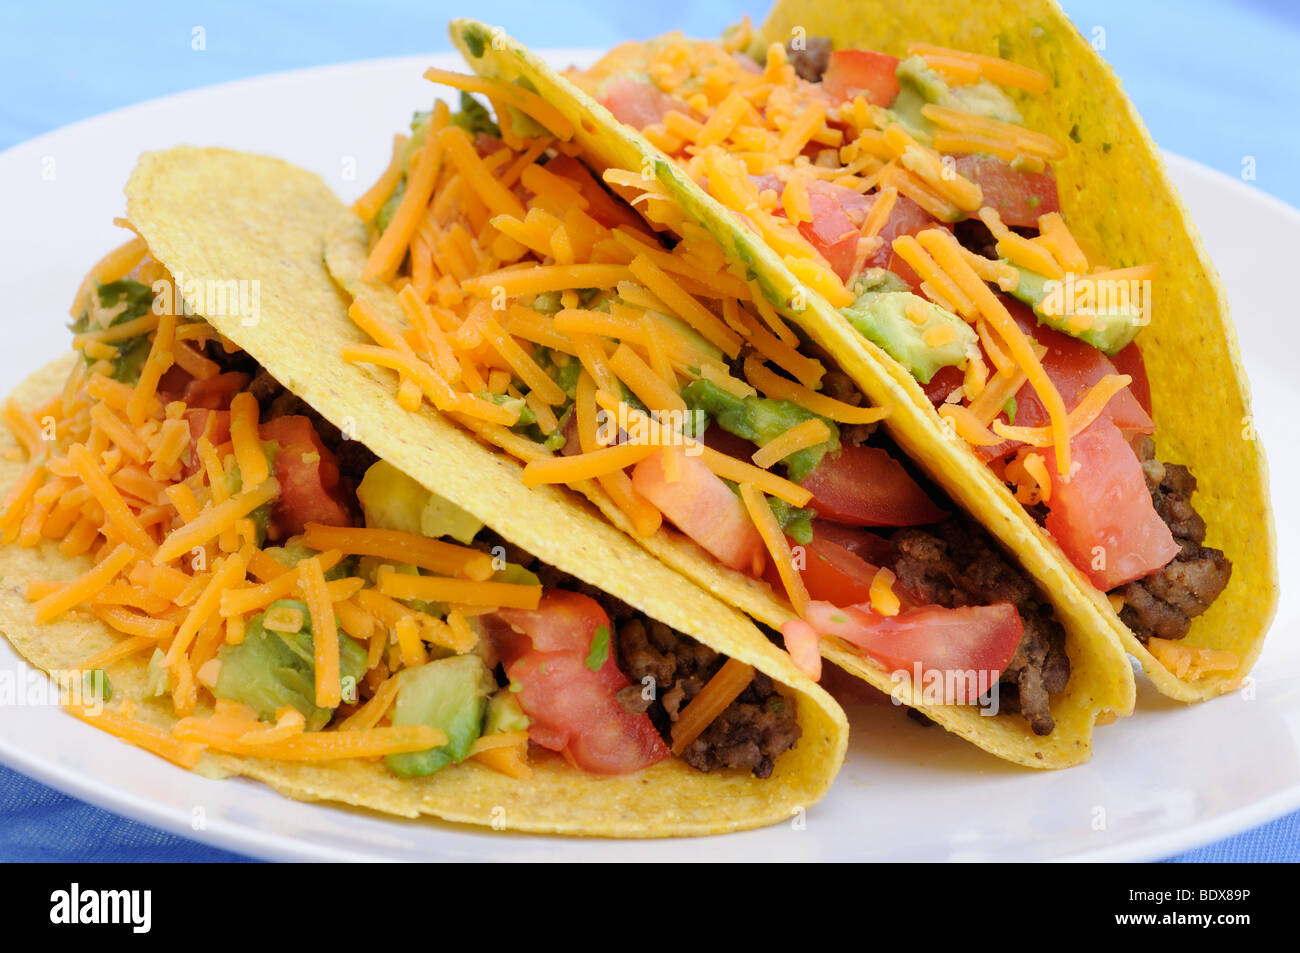 Tacos with beef, tomato, avocado  and cheddar cheese - Stock Image